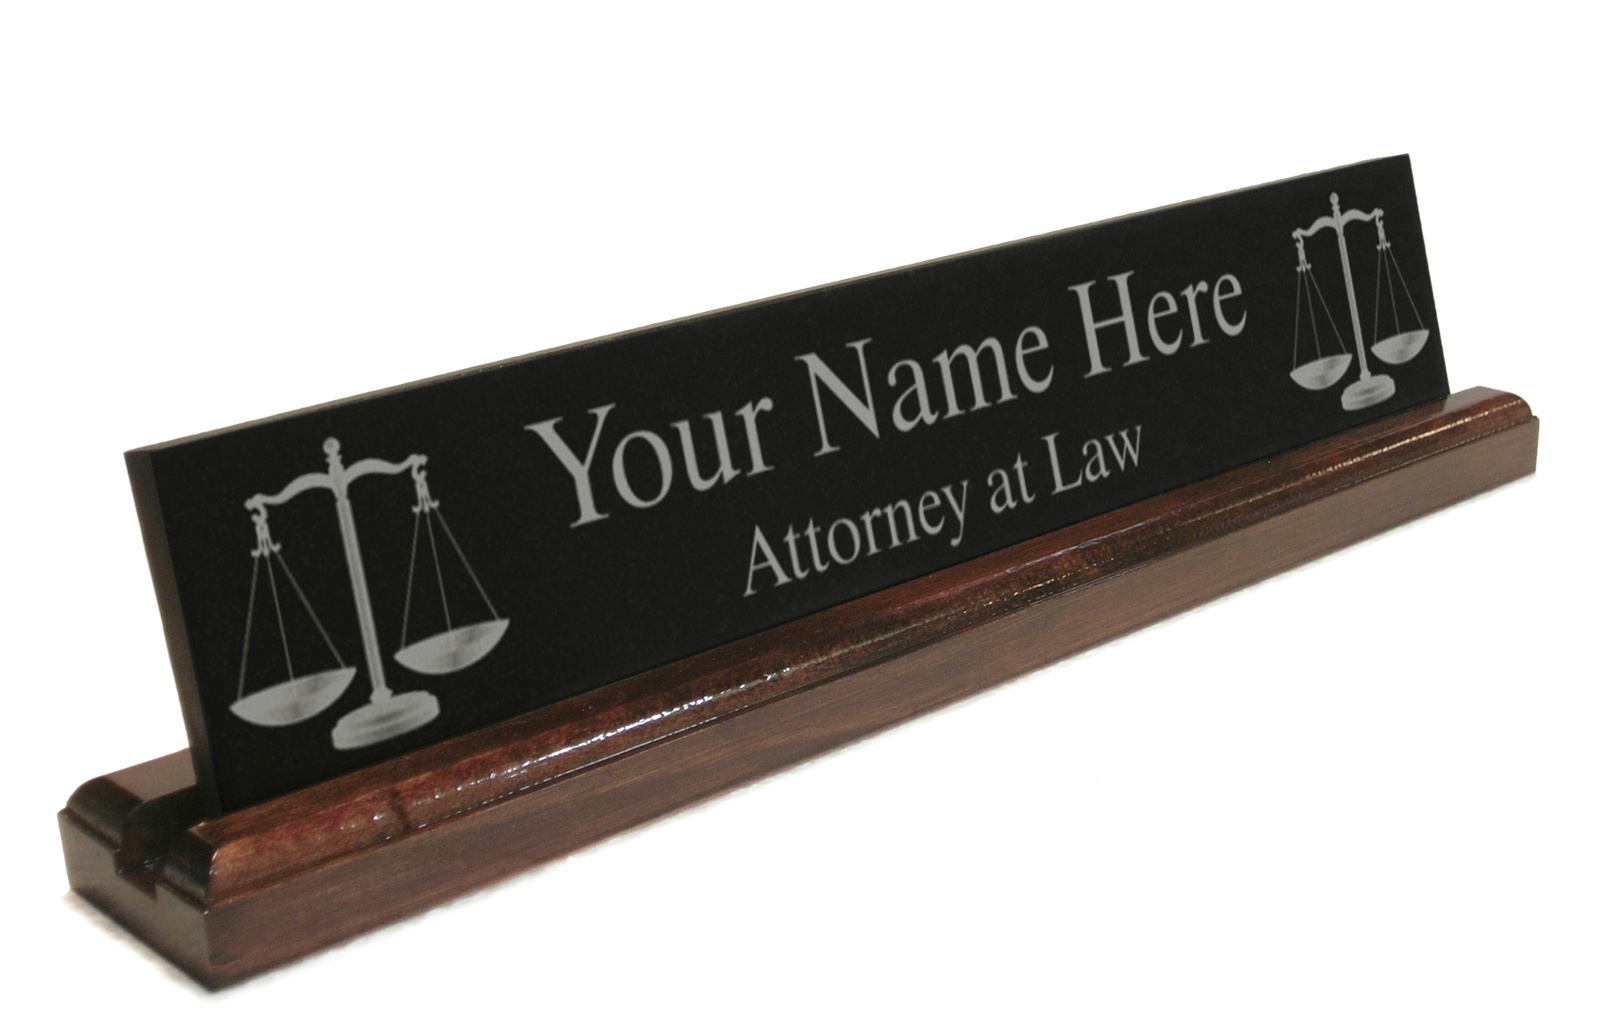 Name Plate: Personalized Attorney Lawyer Desk Name Plate Custom